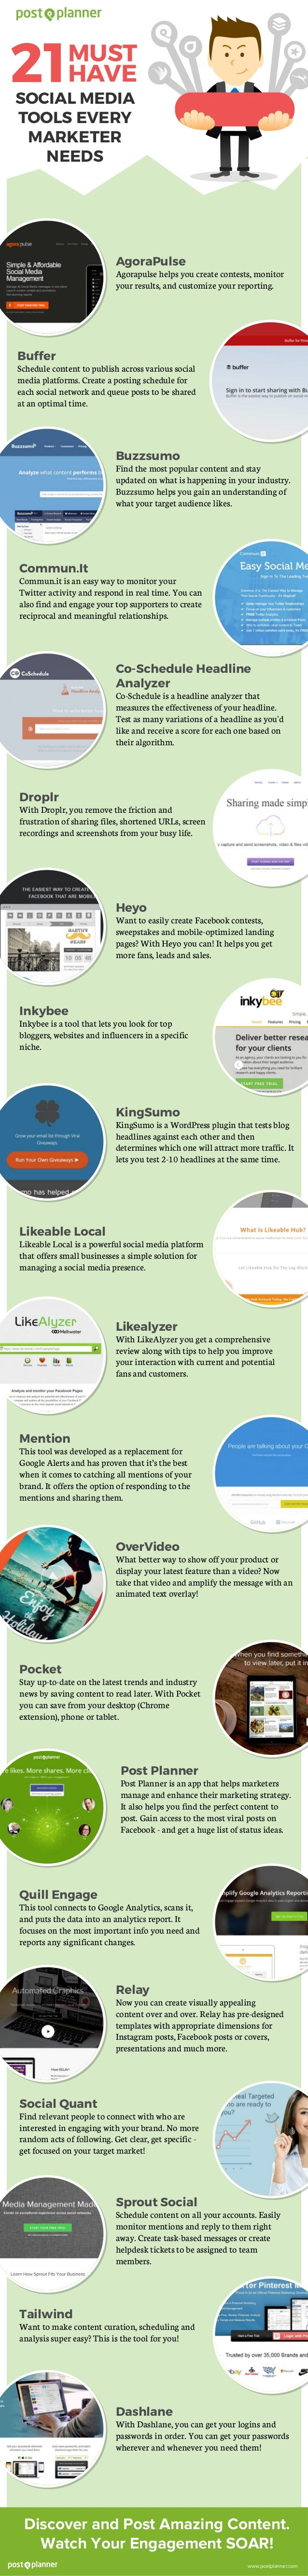 21 Tricks With Google Musthave Social Media Tools Every Marketer Needs